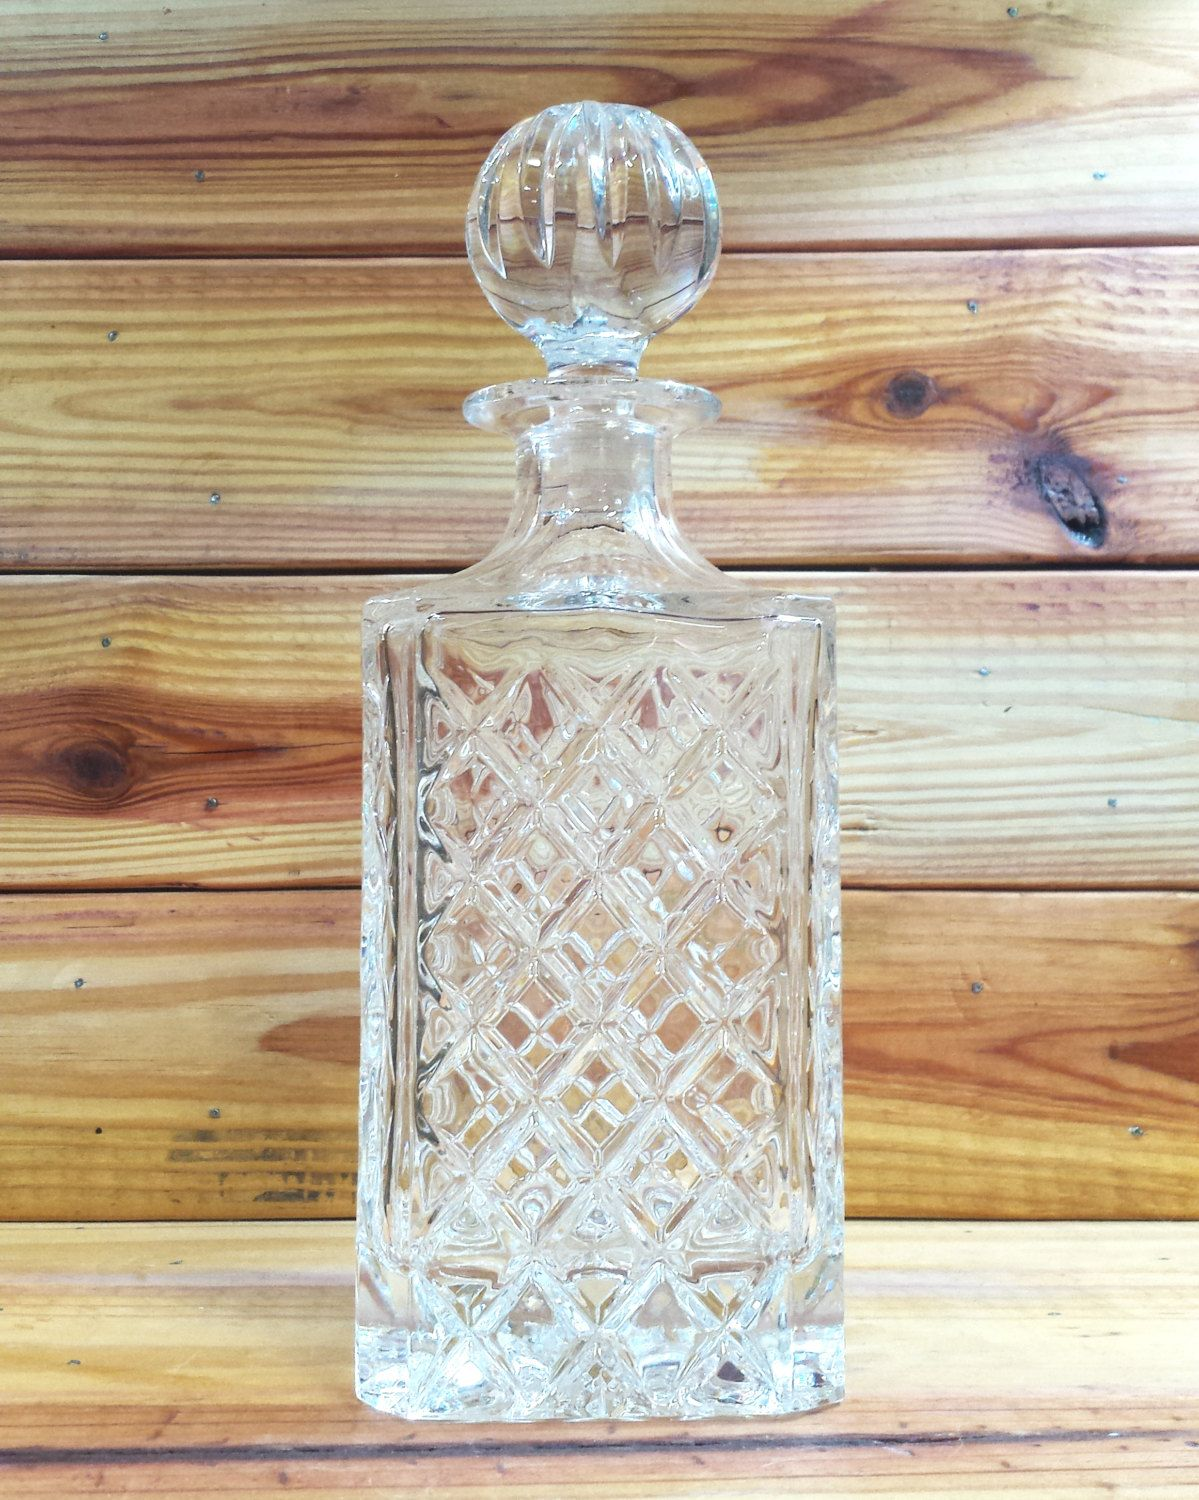 Block crystal whiskey decanter by artmaxantiques on etsy block crystal whiskey decanter by artmaxantiques on etsy reviewsmspy